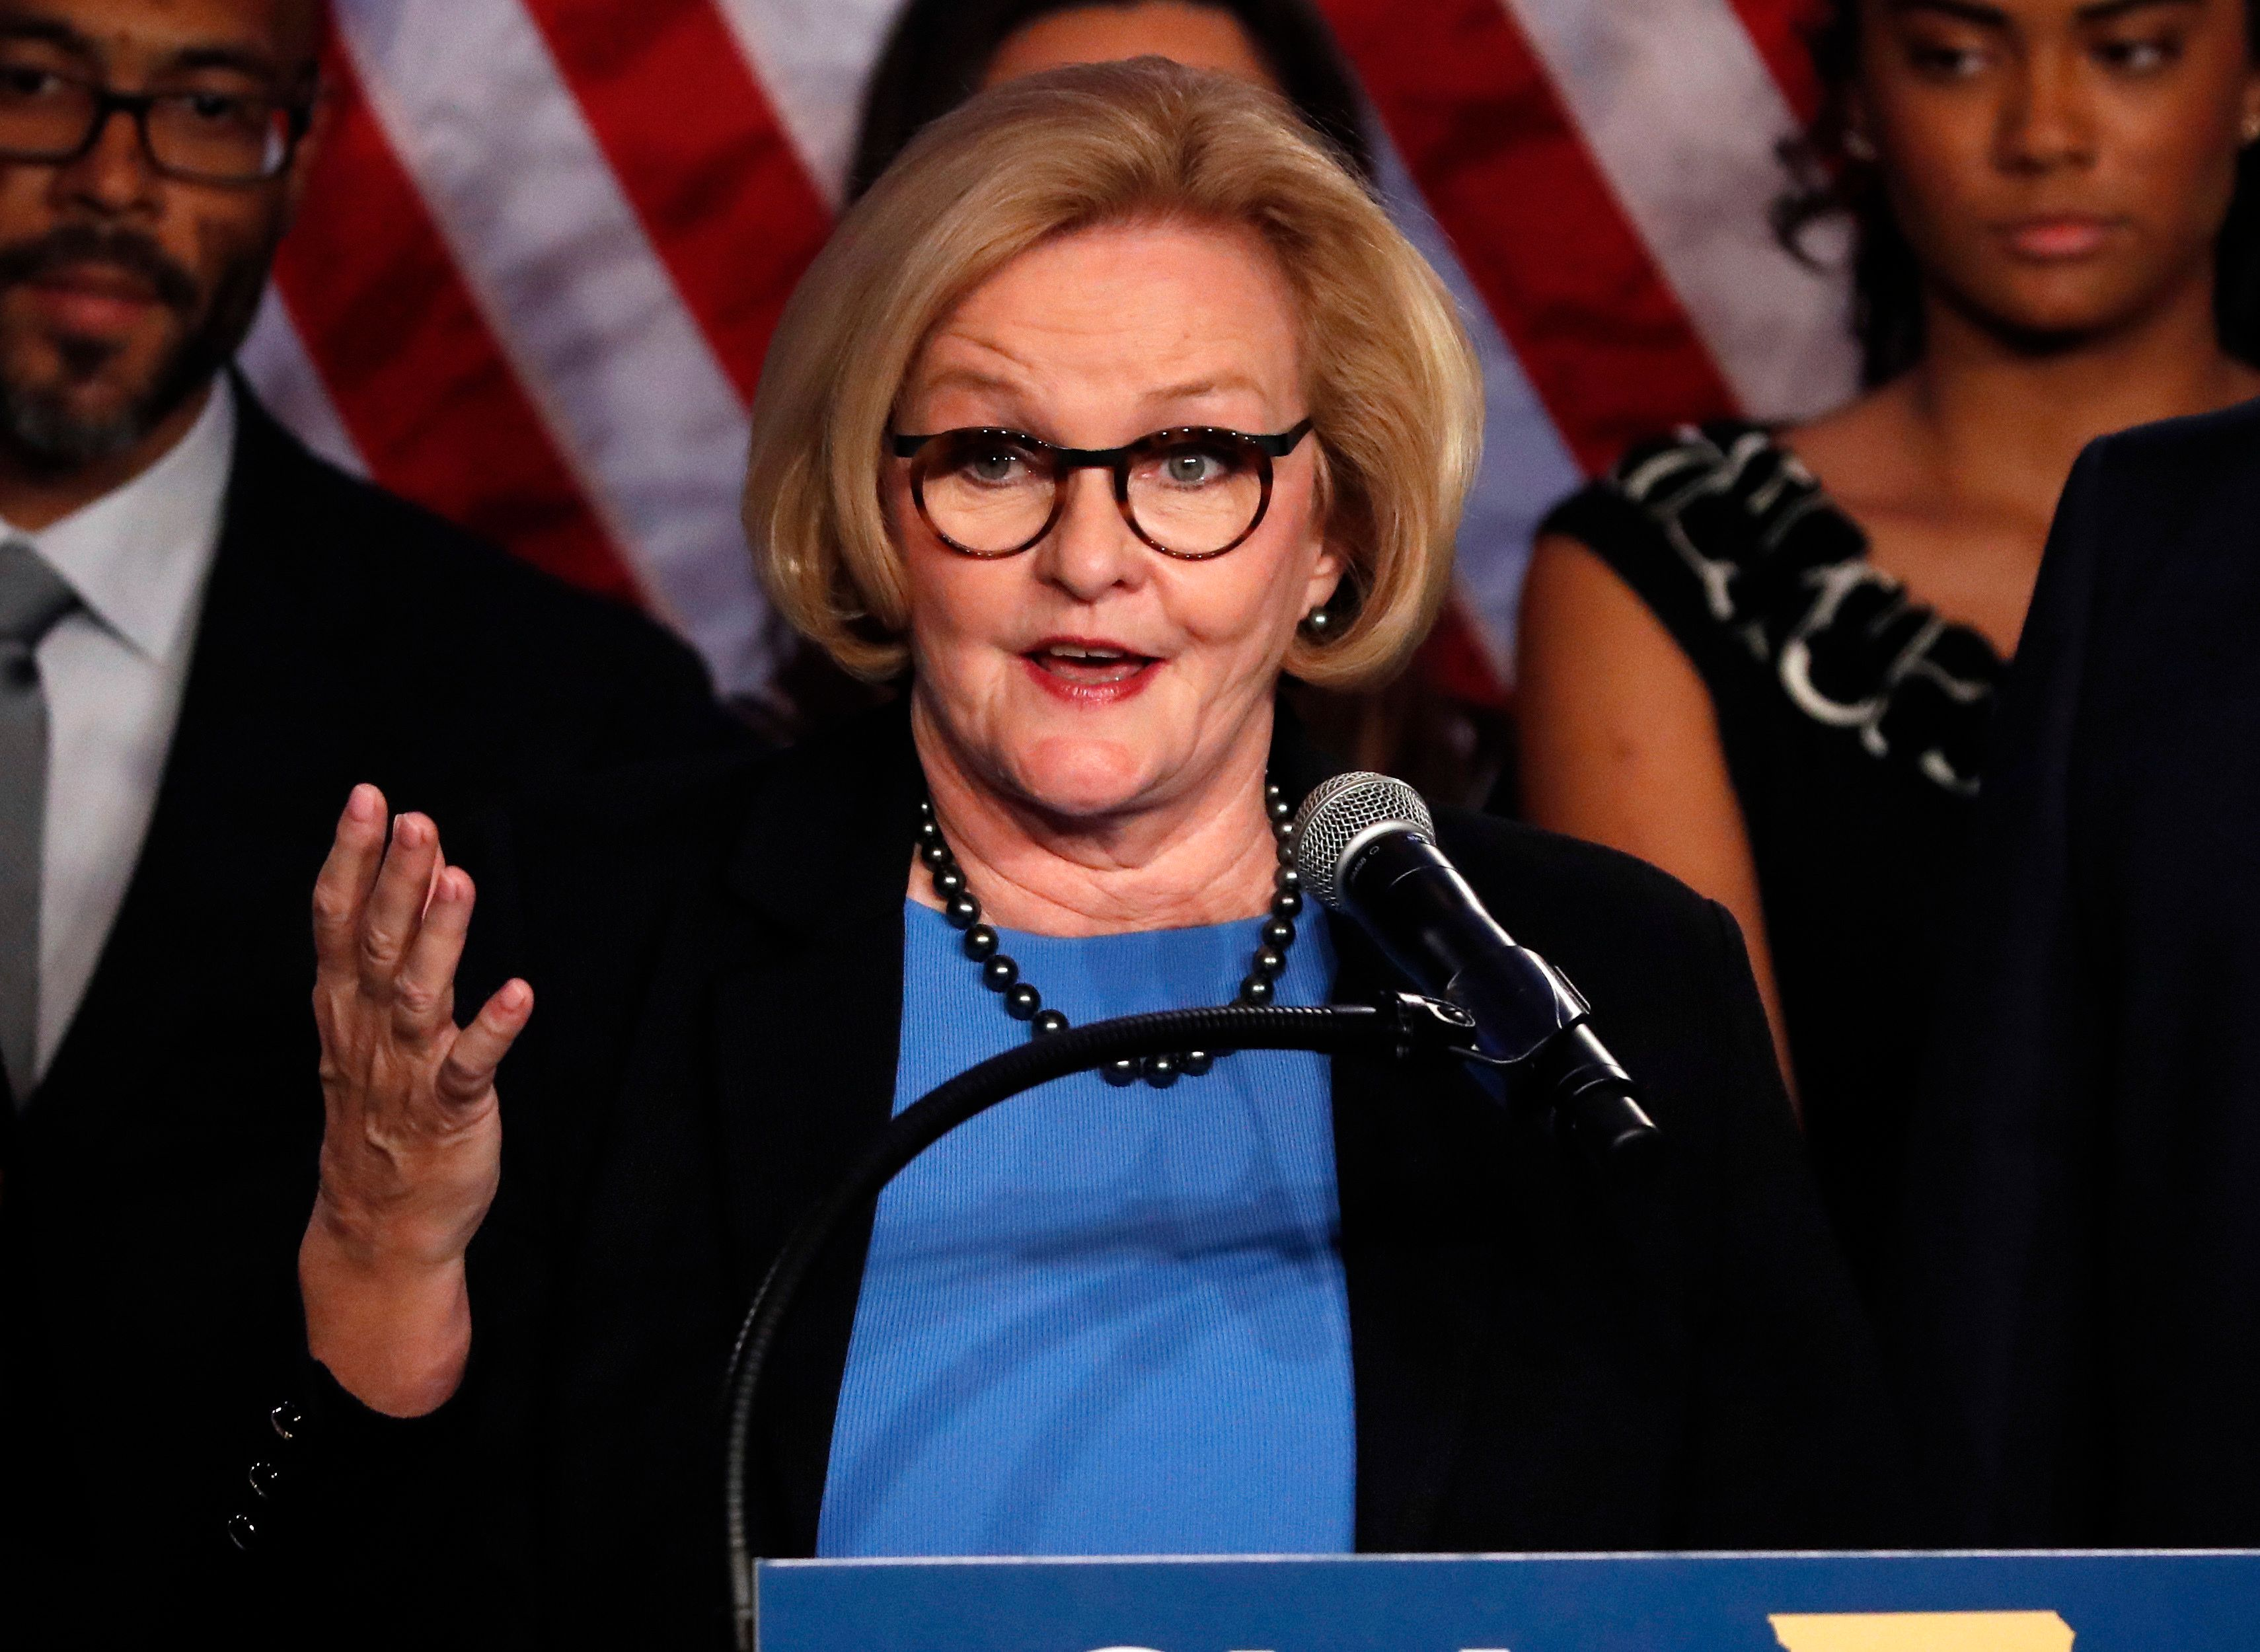 Sen. Claire McCaskill (D-Mo.) said she believes history will judge members of the Republican Party who don't speak up about the dishonesty of President Donald Trump.